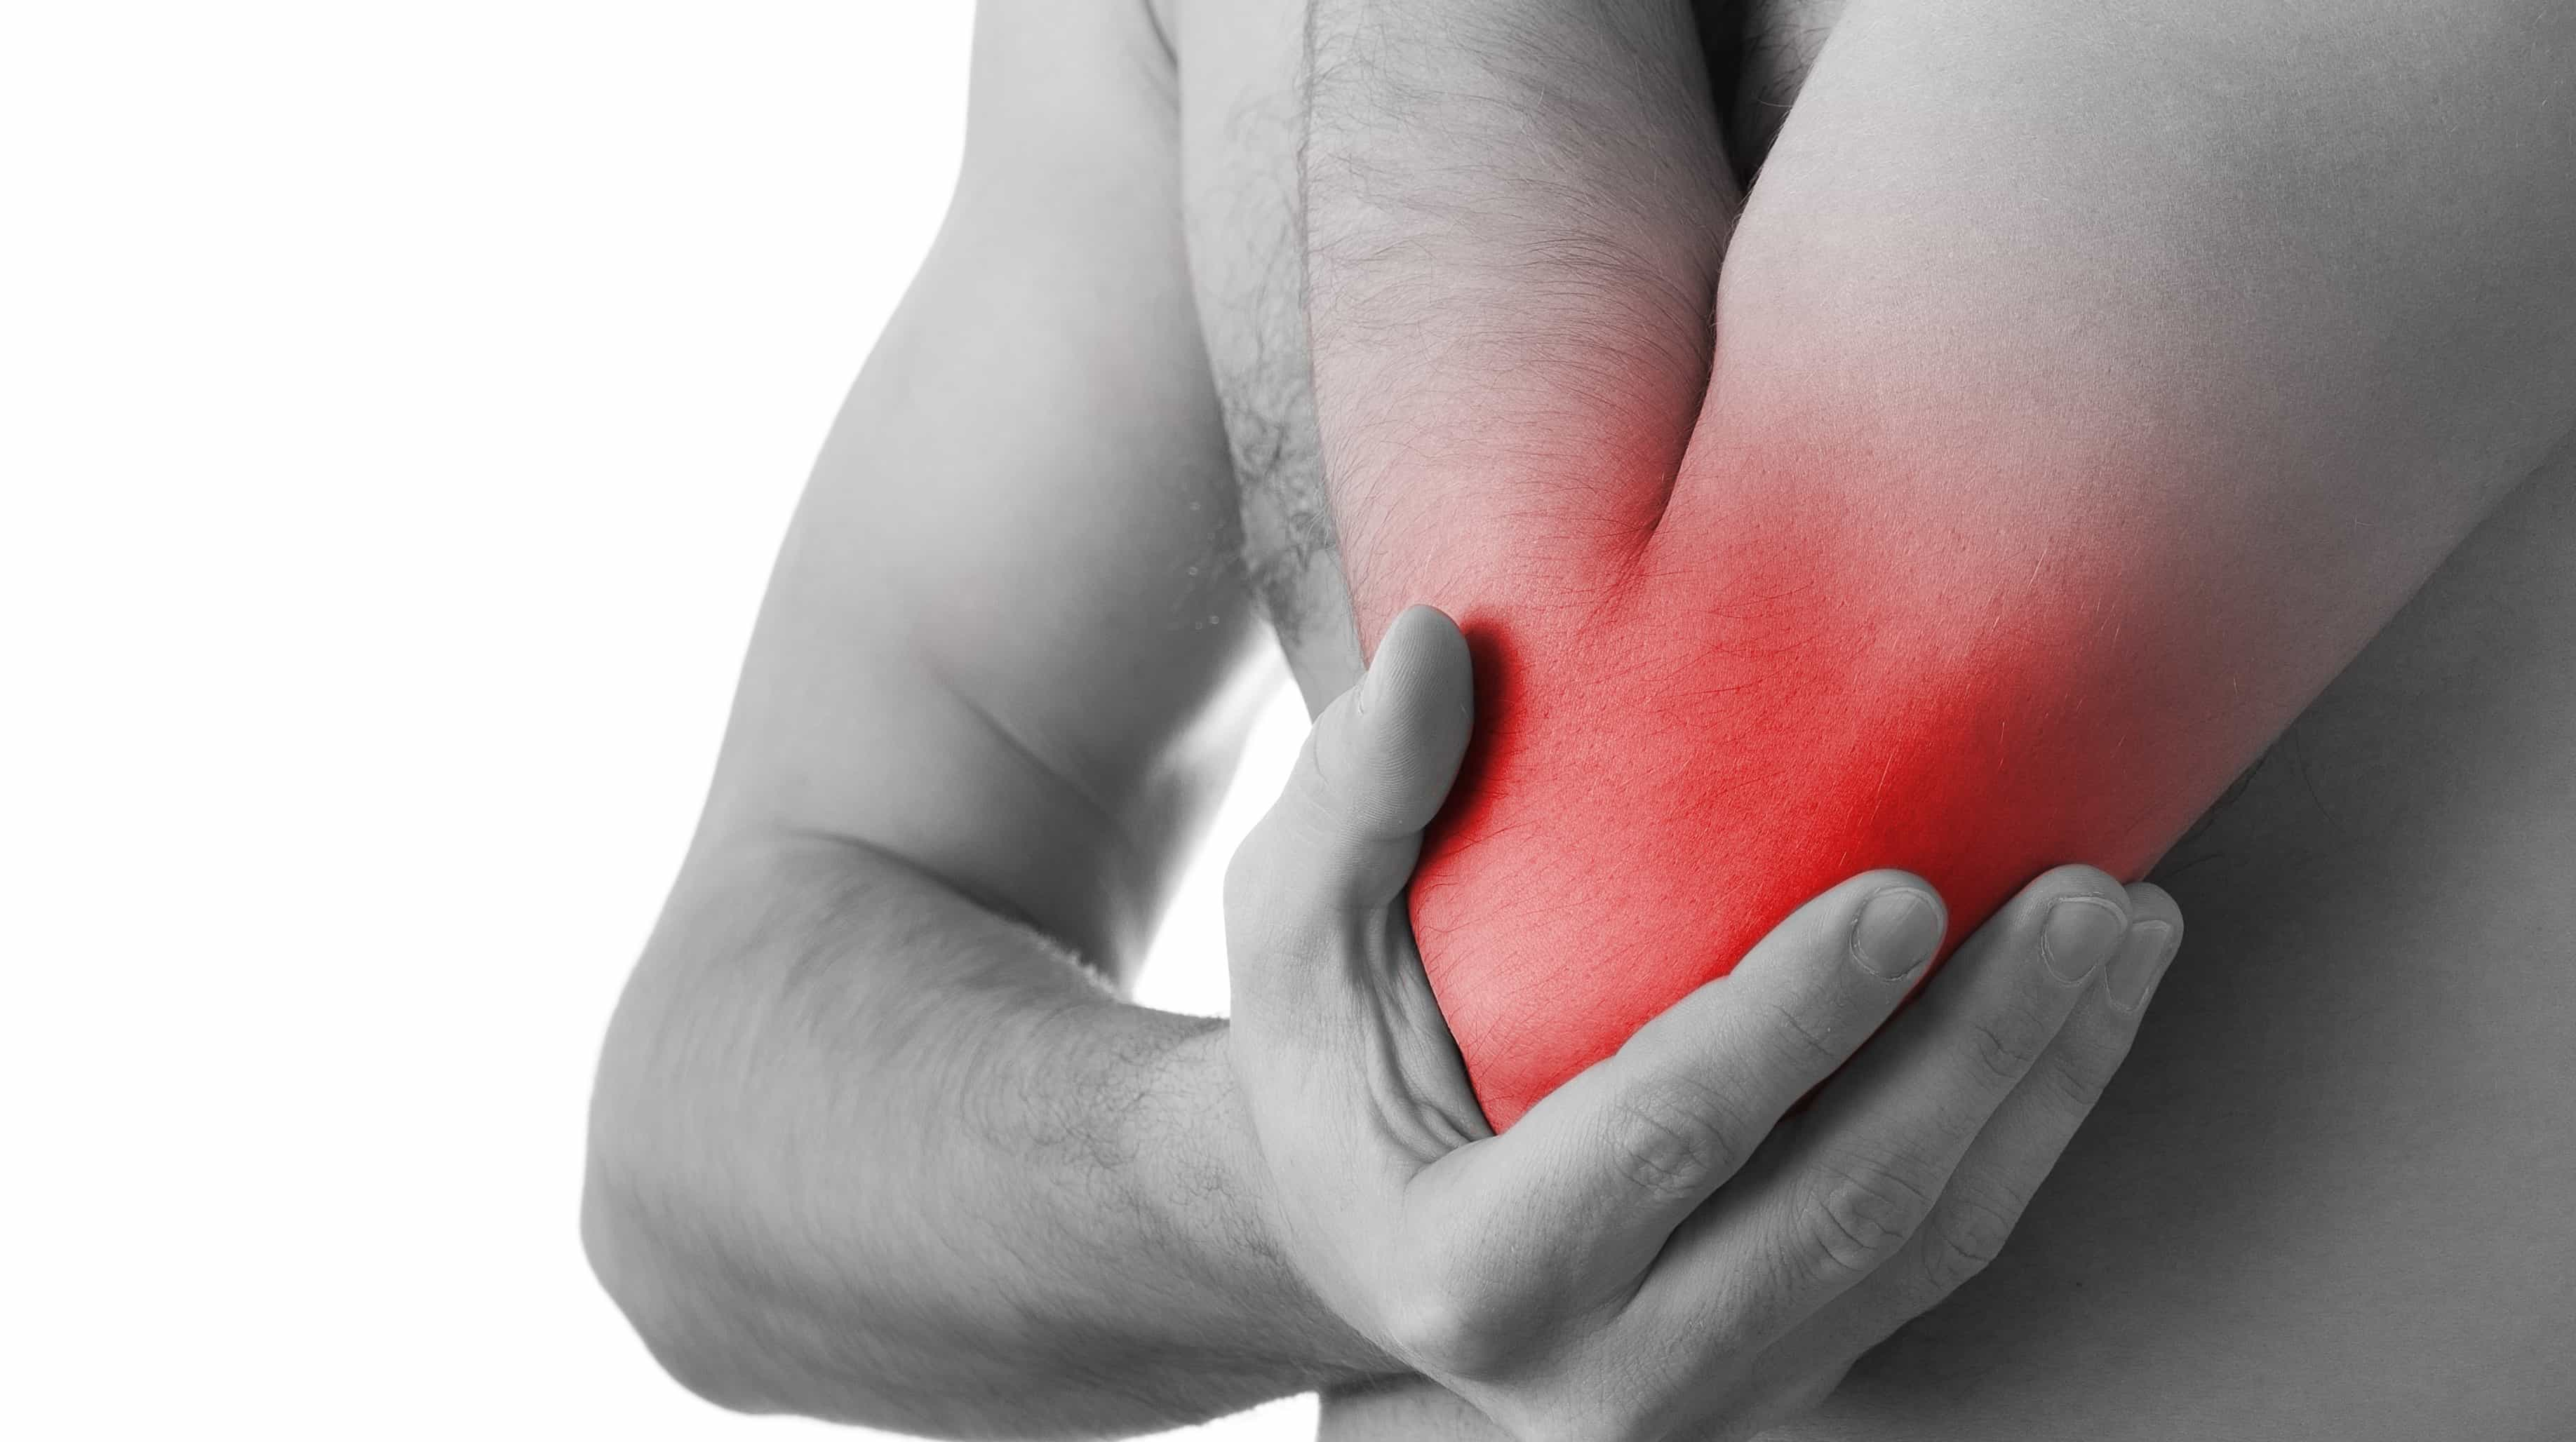 joint-pain-elbow-arthritis